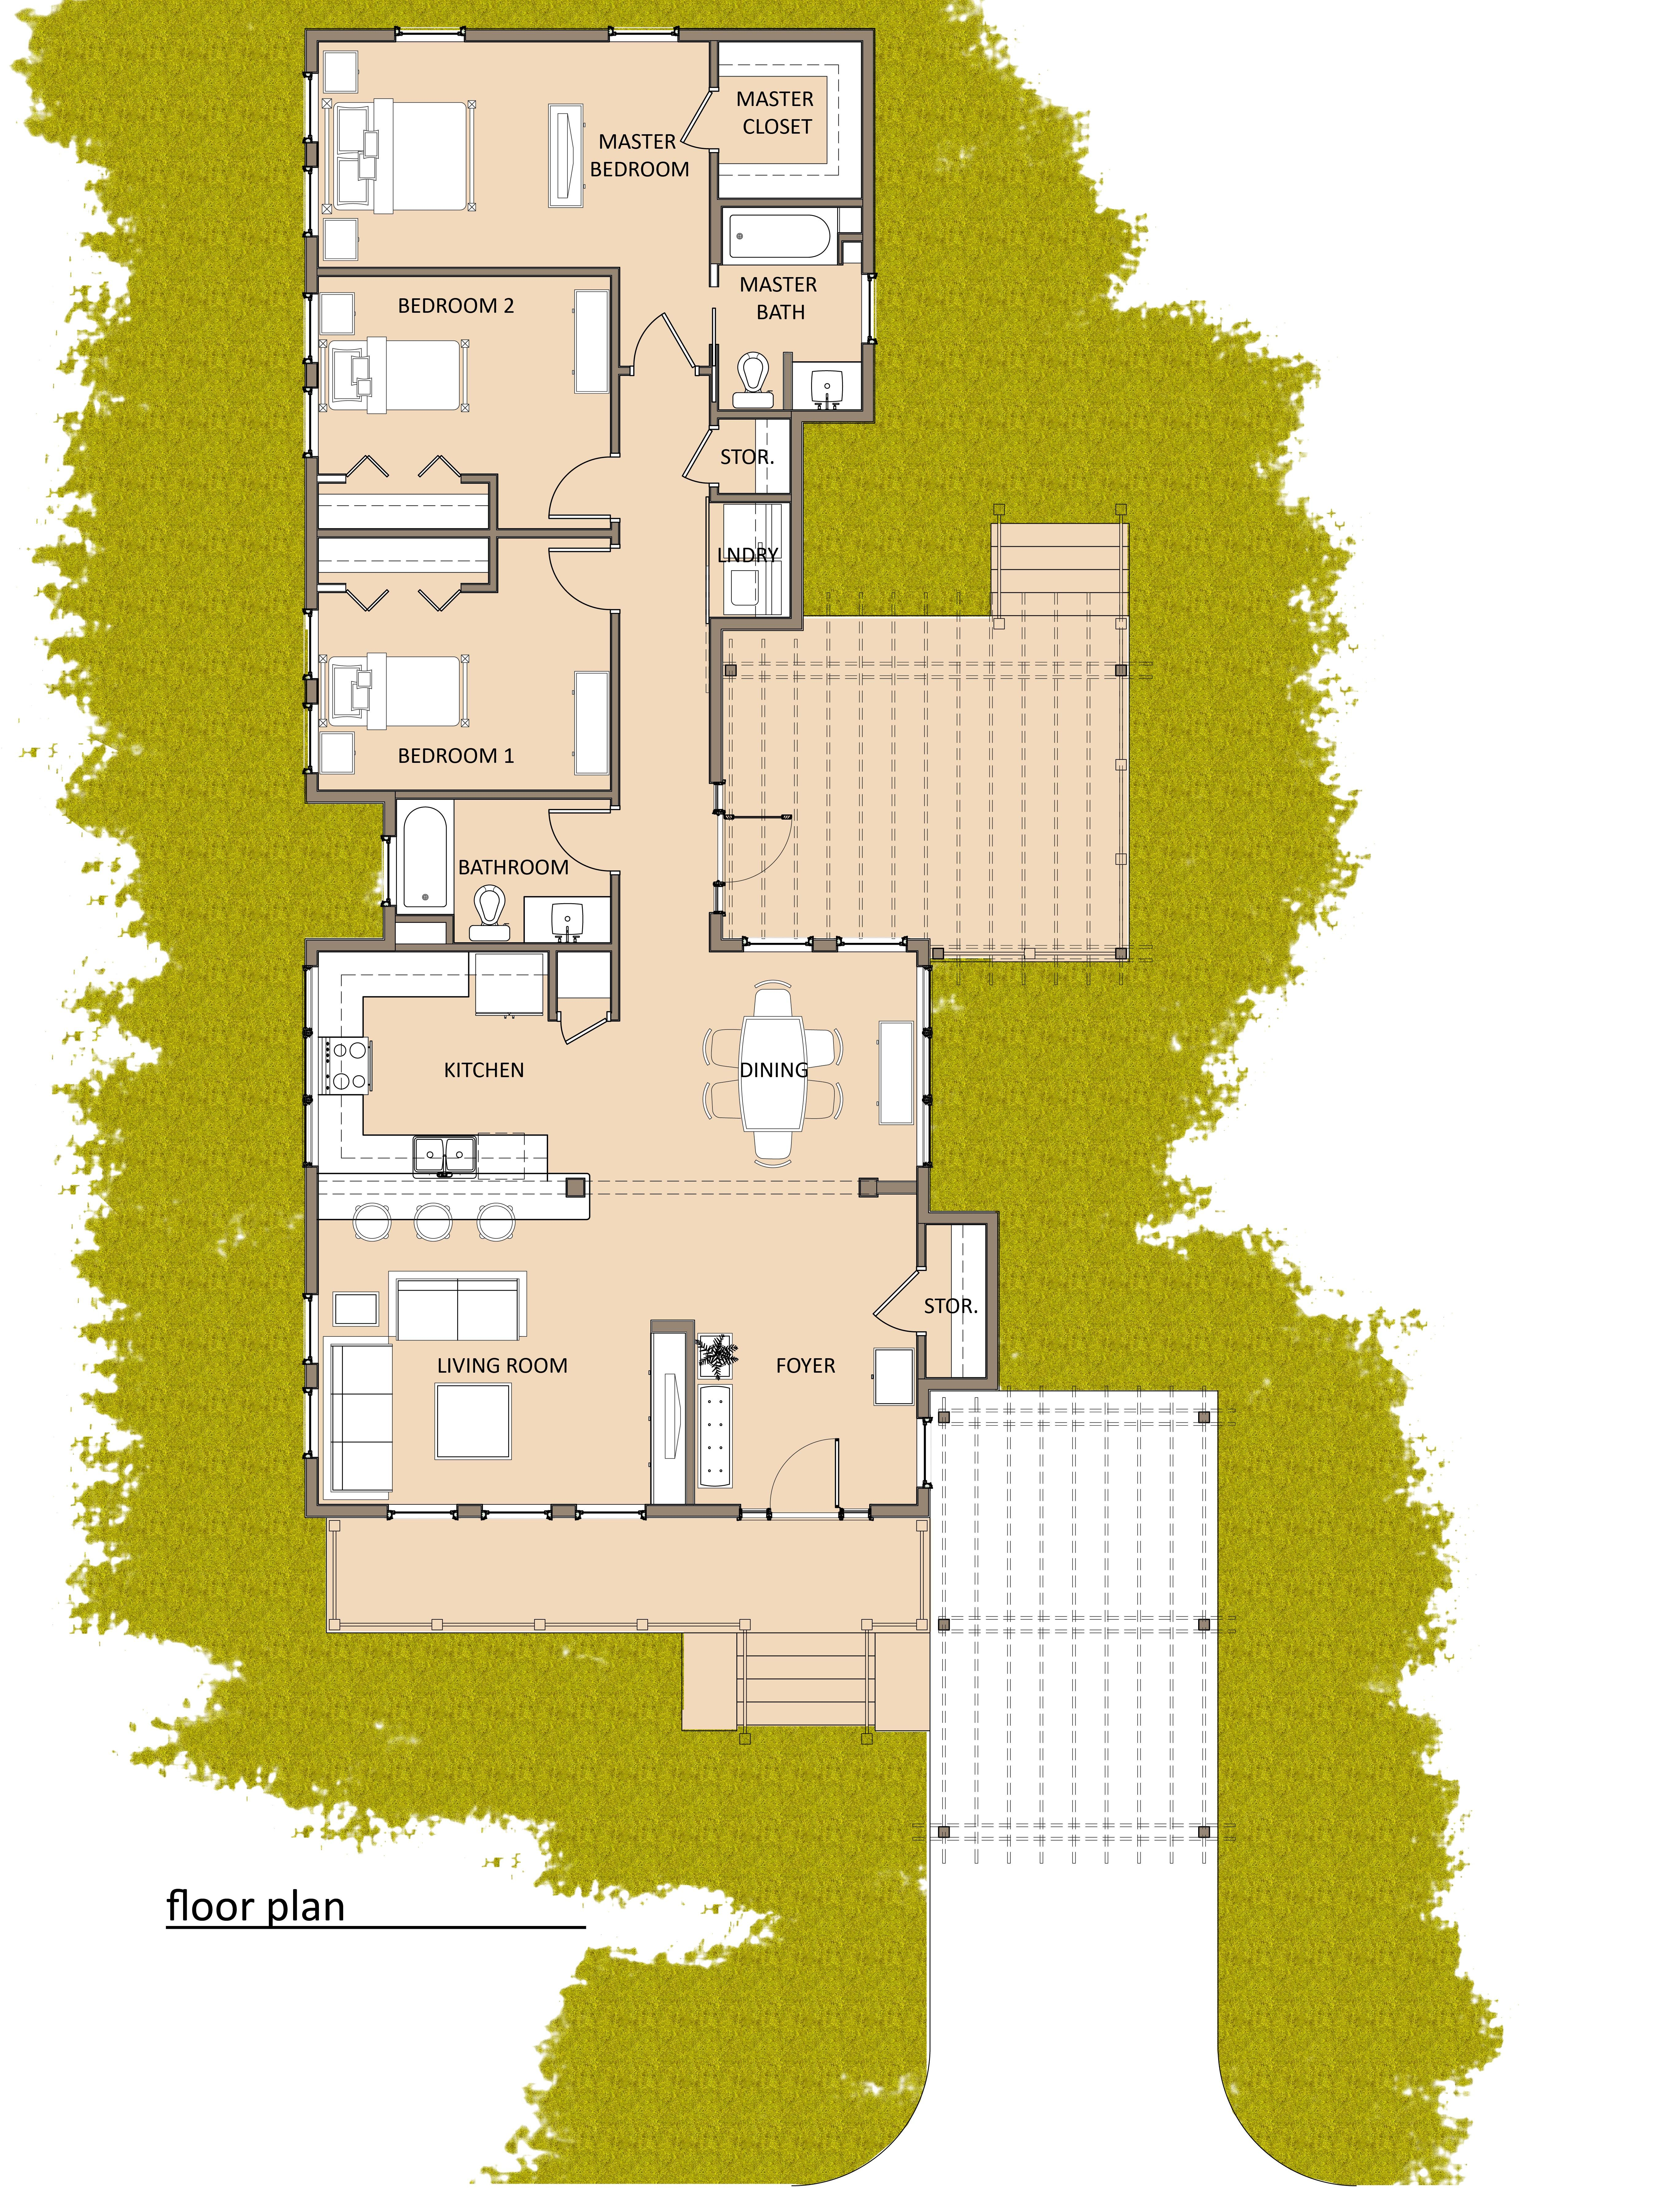 1000 images about CONTAINER shipping HOMES AND FLOOR PLANS on